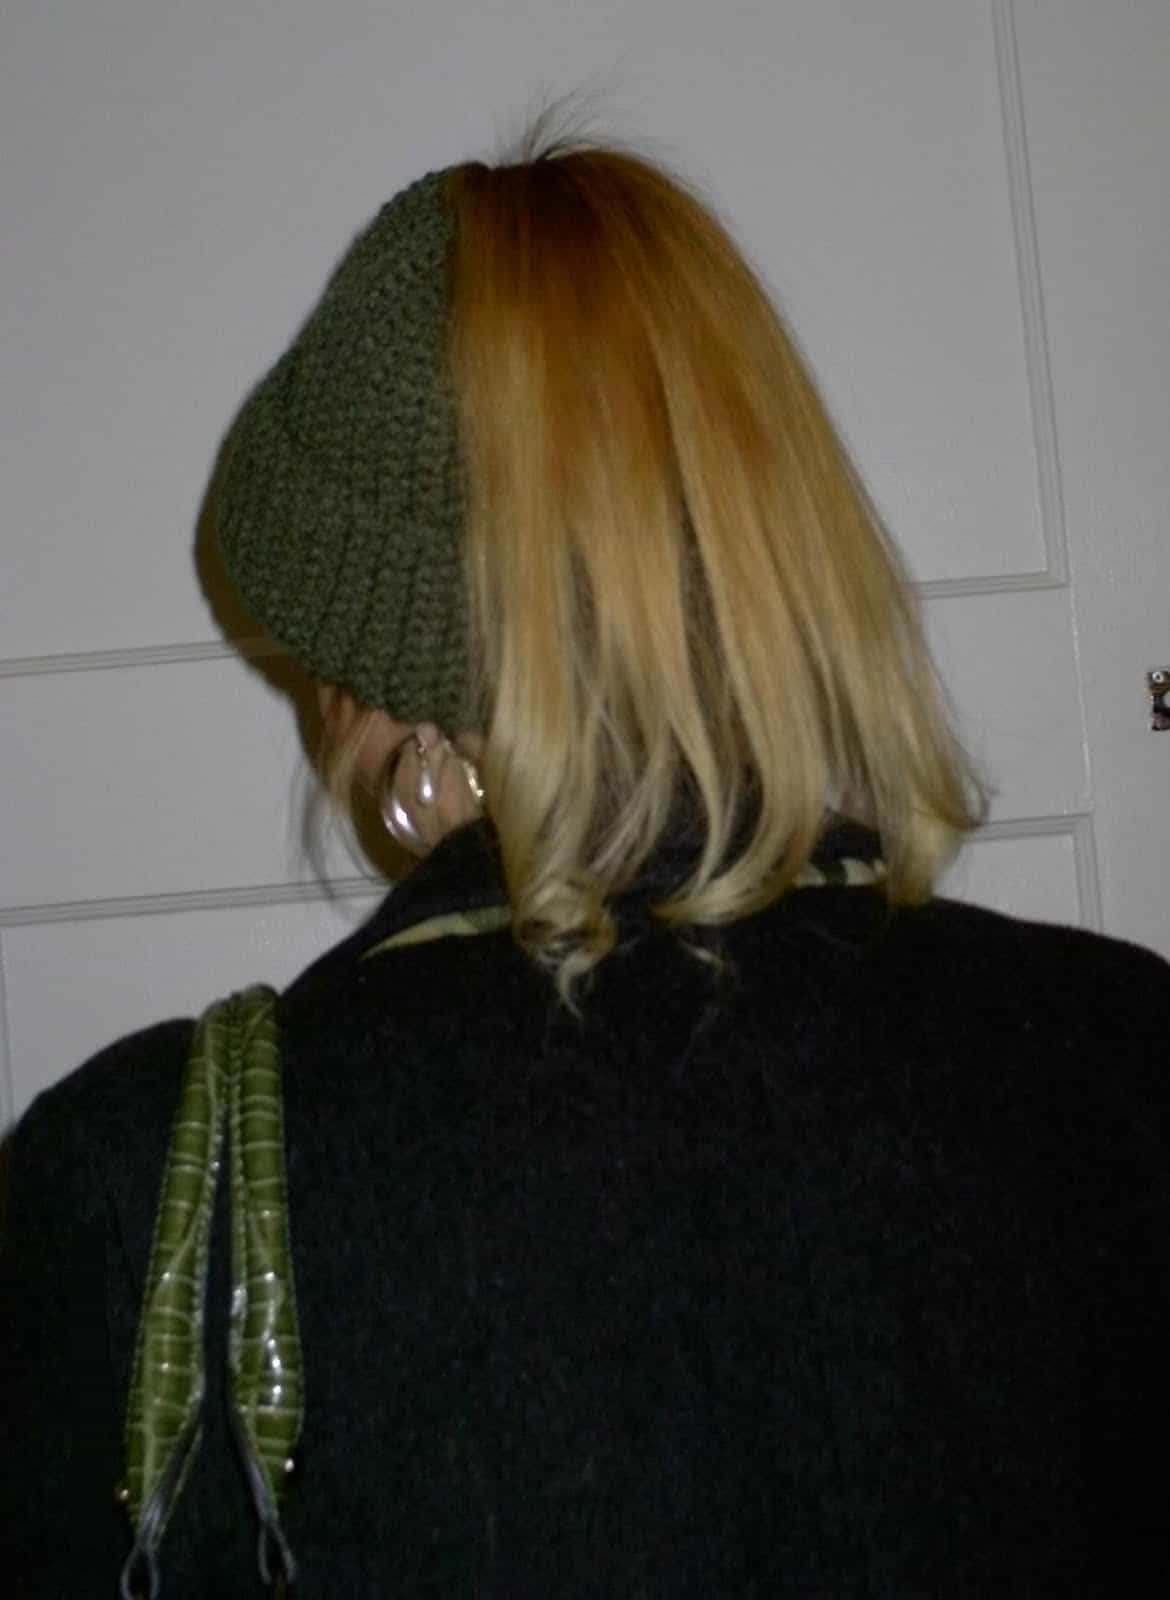 My pretty ponytail hat